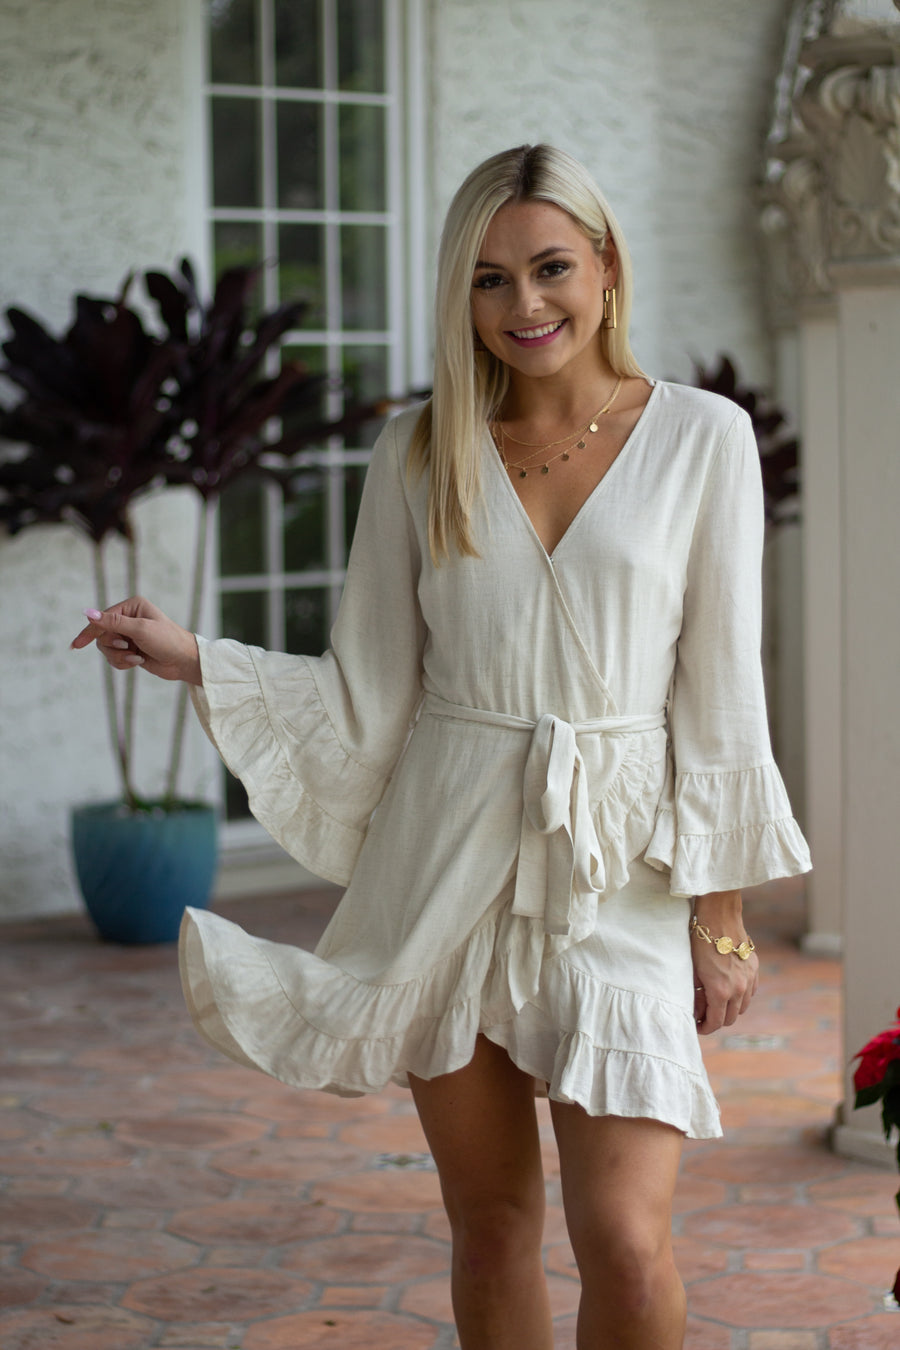 This lightweight dress has long tiered ruffle cuffed sleeves that attach to a surplice neckline and fitted and darted bodice. It flows into an asymmetrical ruffle mini skirt.